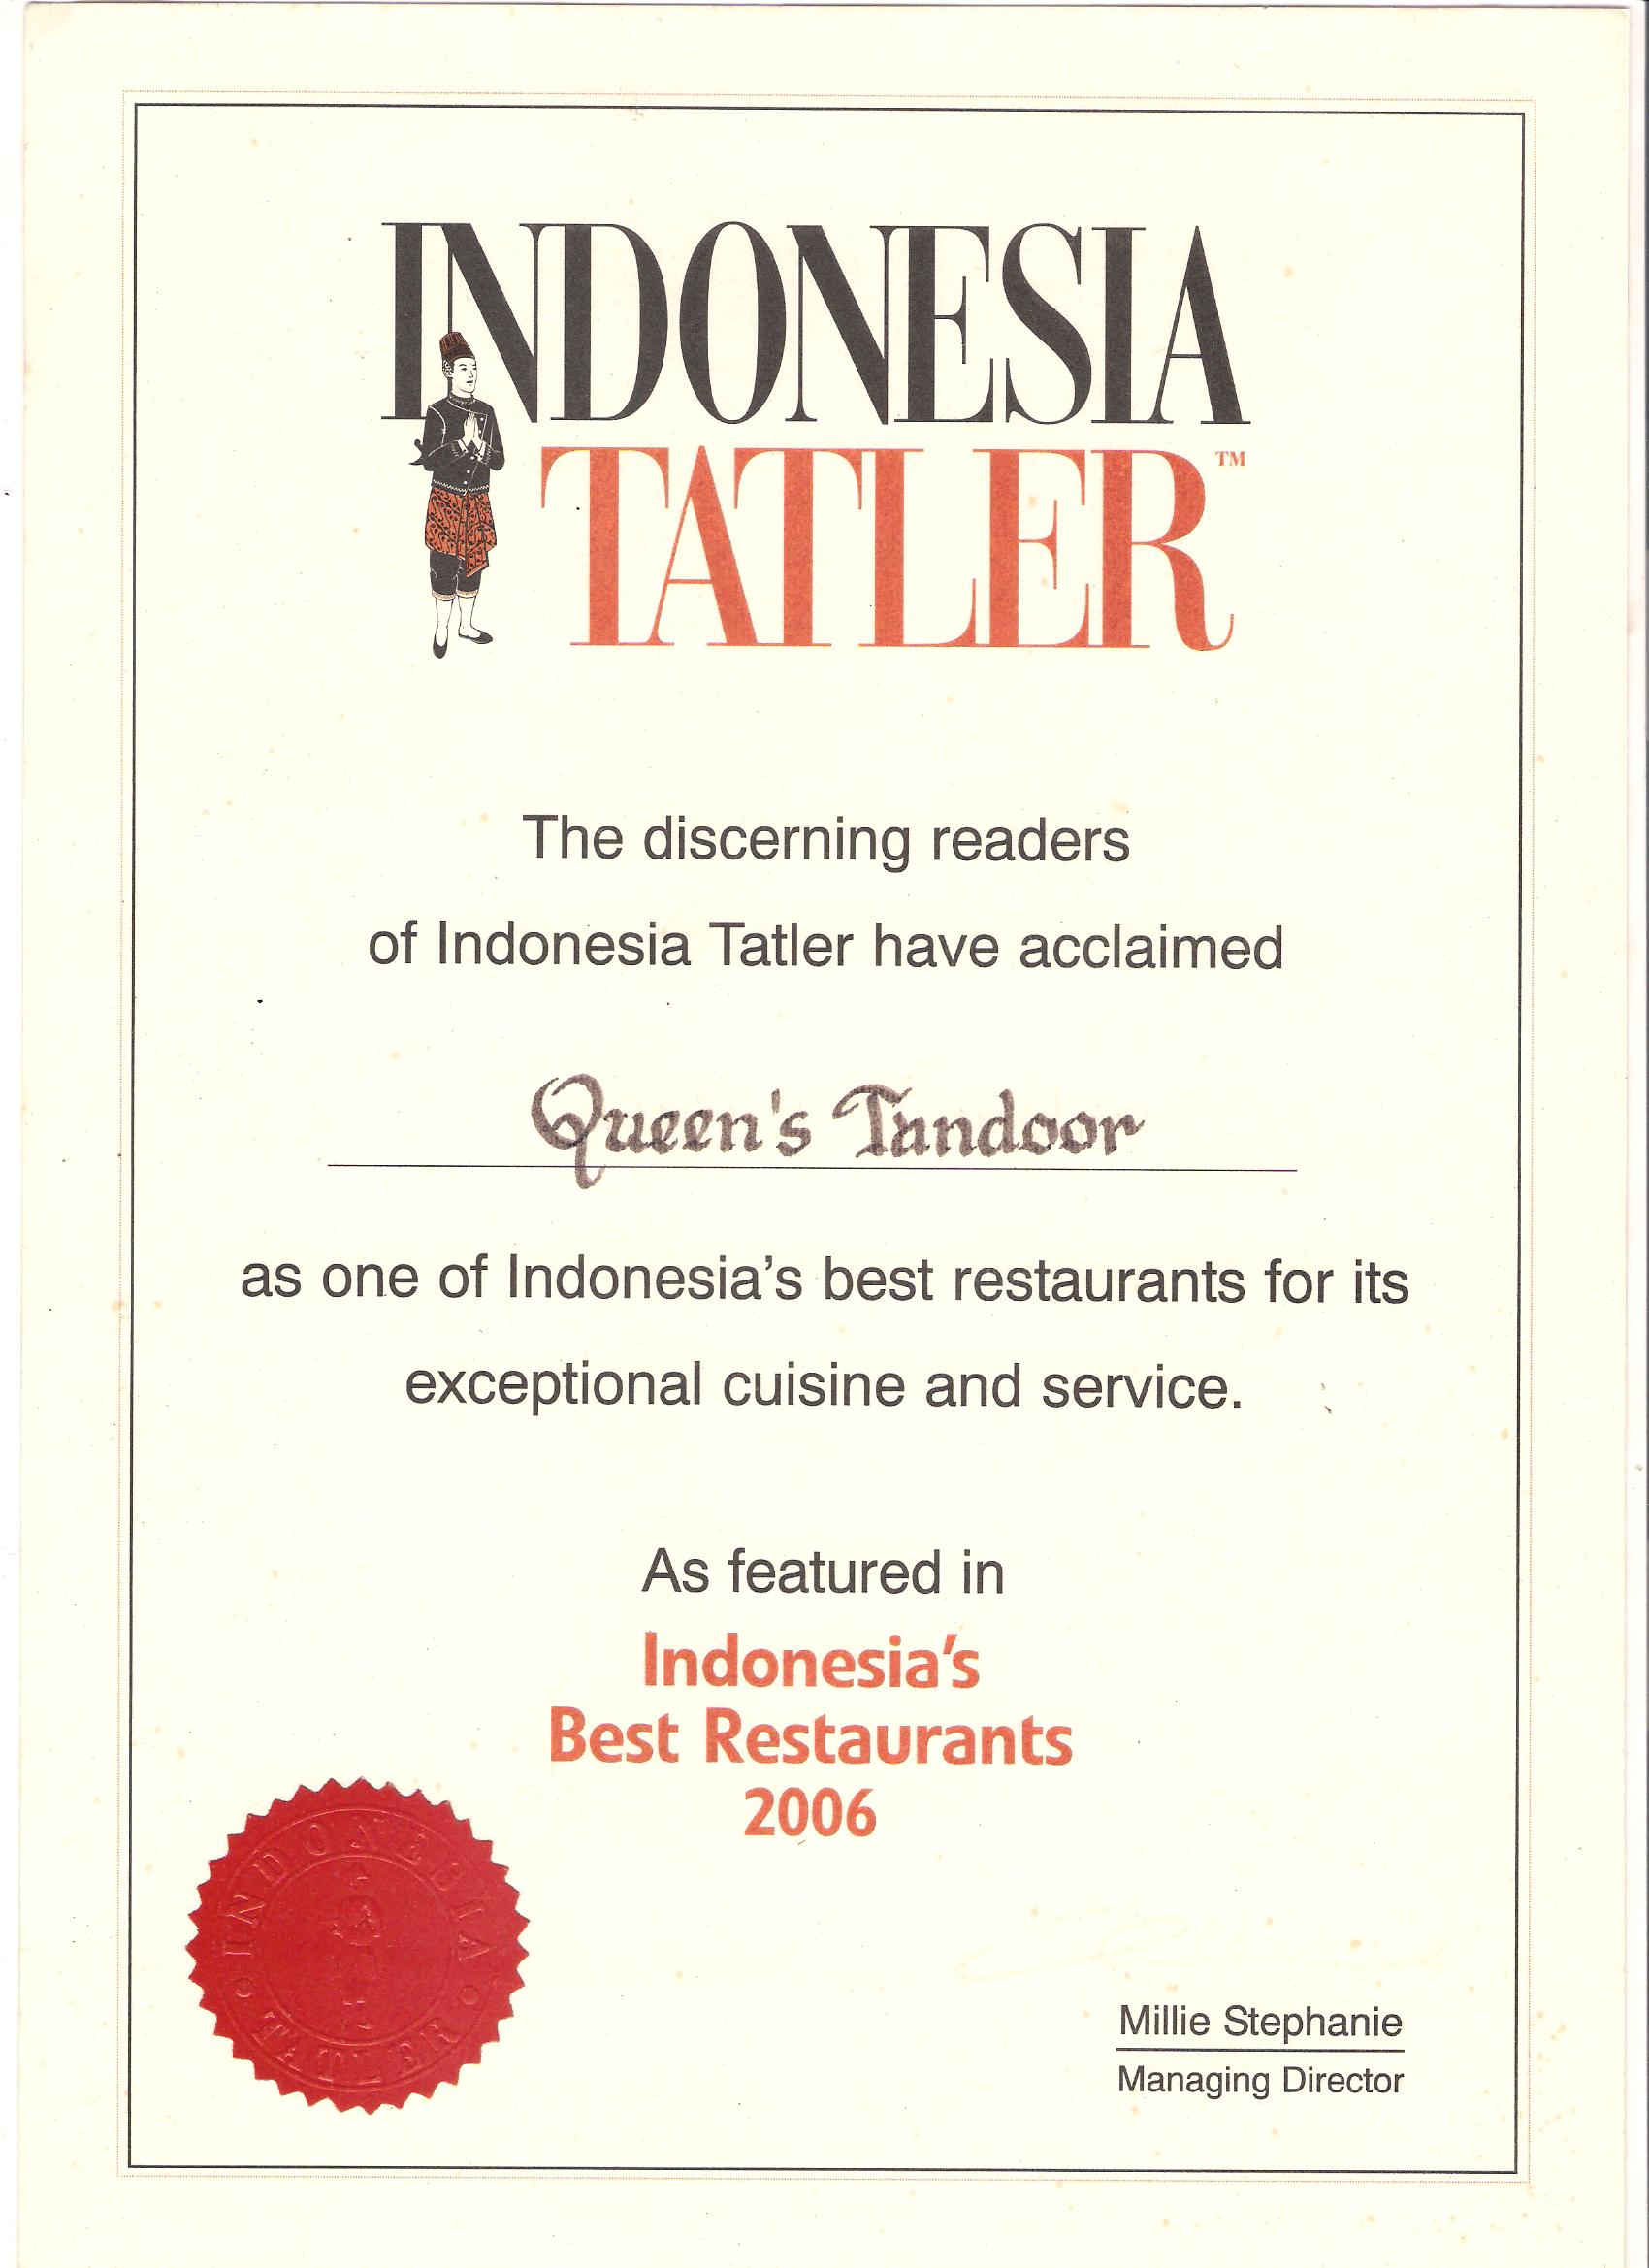 Indonesia Tatler 2006 - Indonesia Best Restaurant